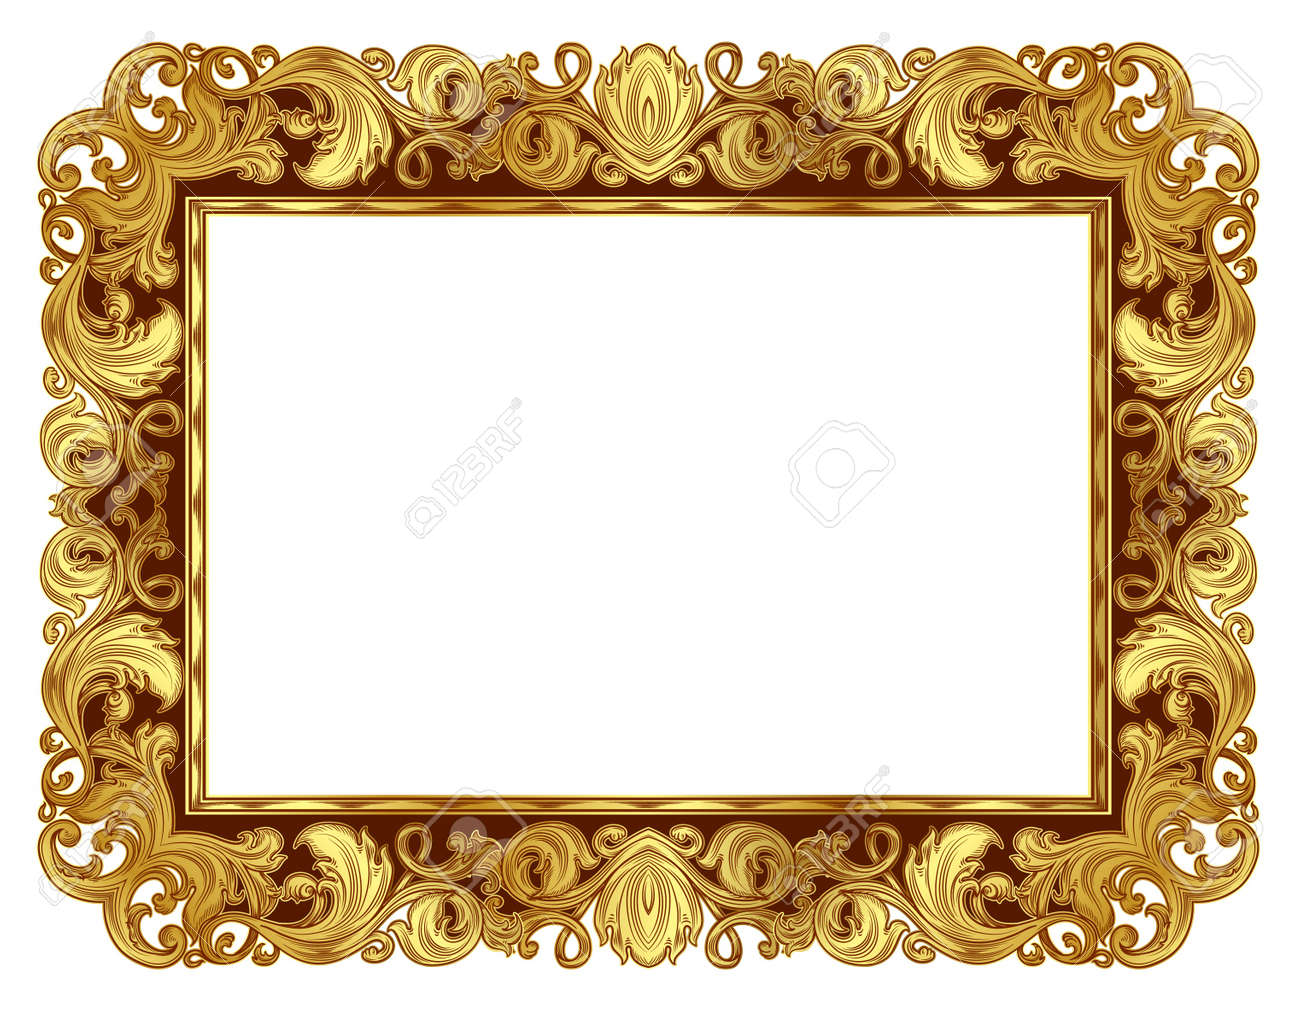 Gold Ornate Frame In The Renaissance Style, In Isolation Royalty ...